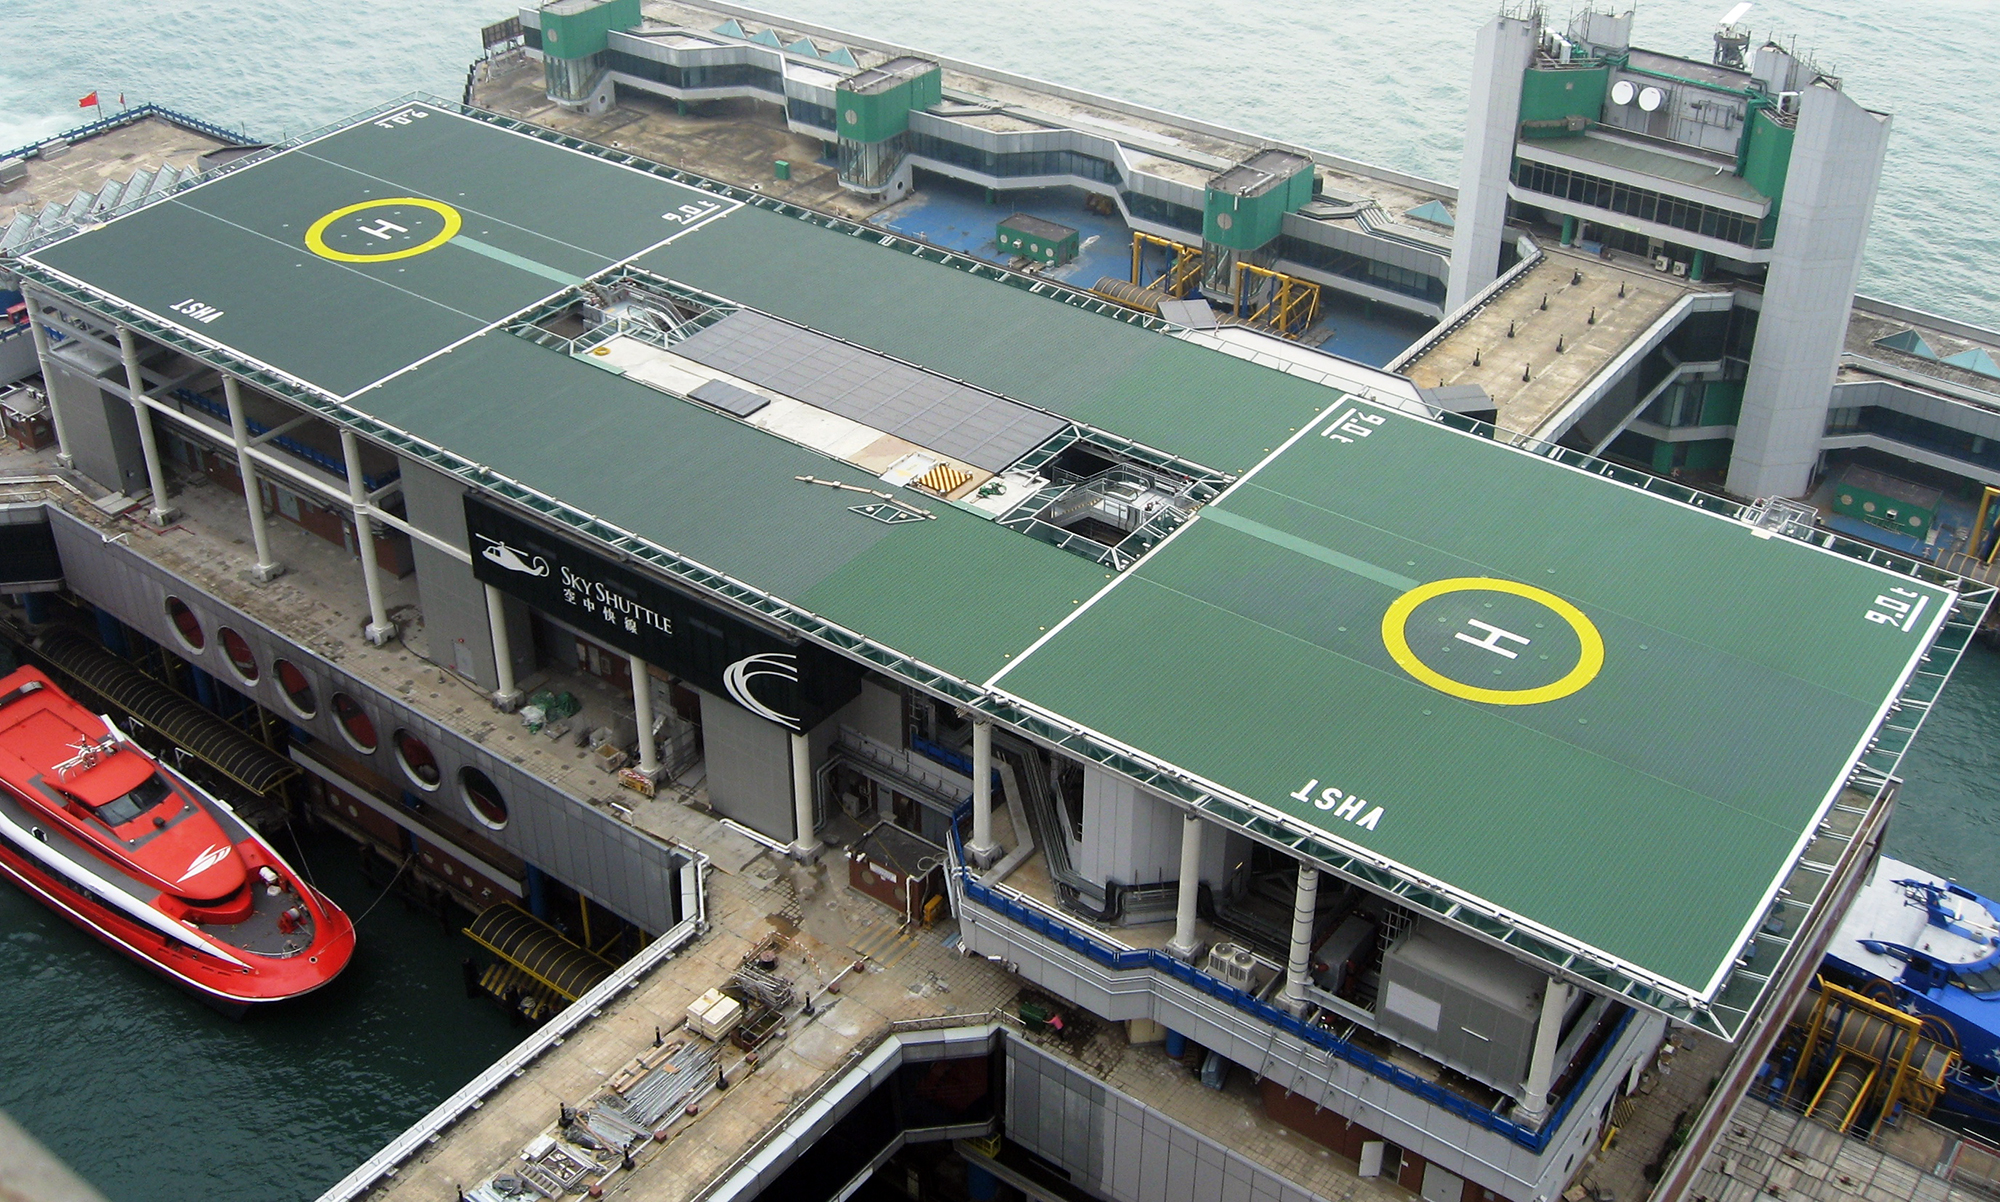 110m x 34m twin helipad at the Hong Kong Ferry Terminal – World's largest heliport